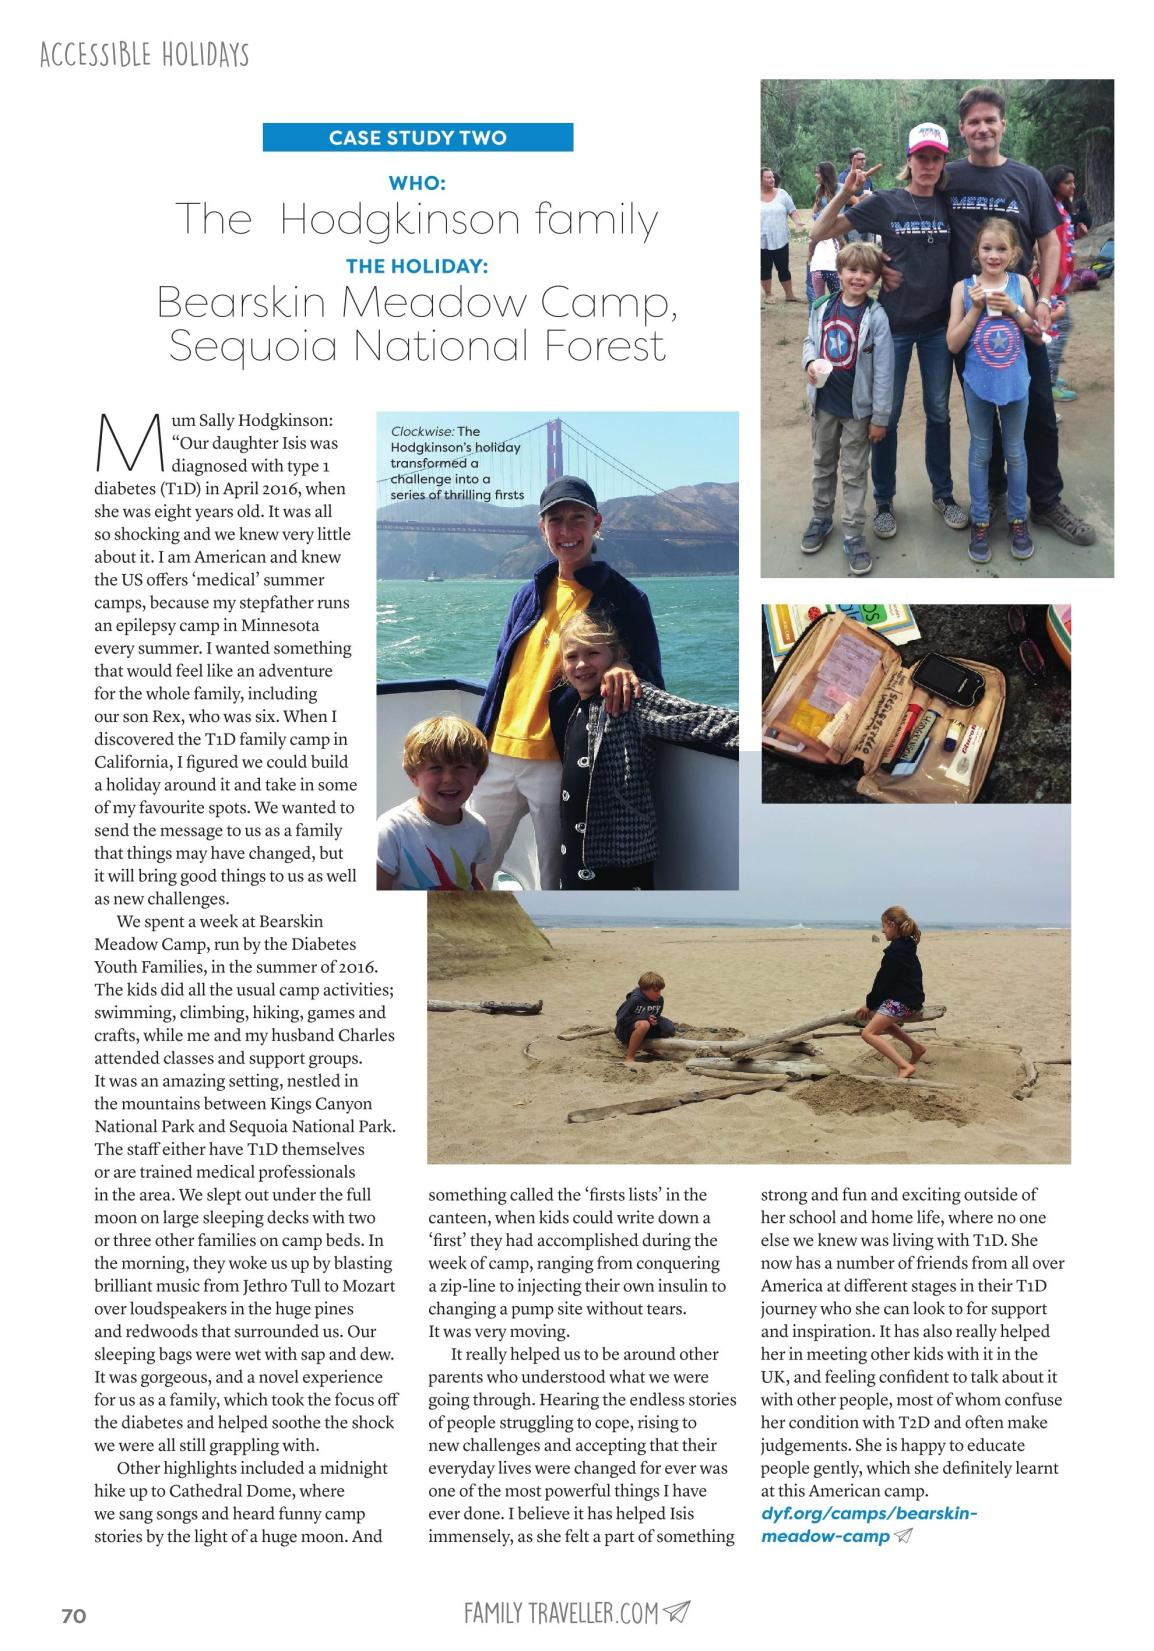 Family Traveller Article